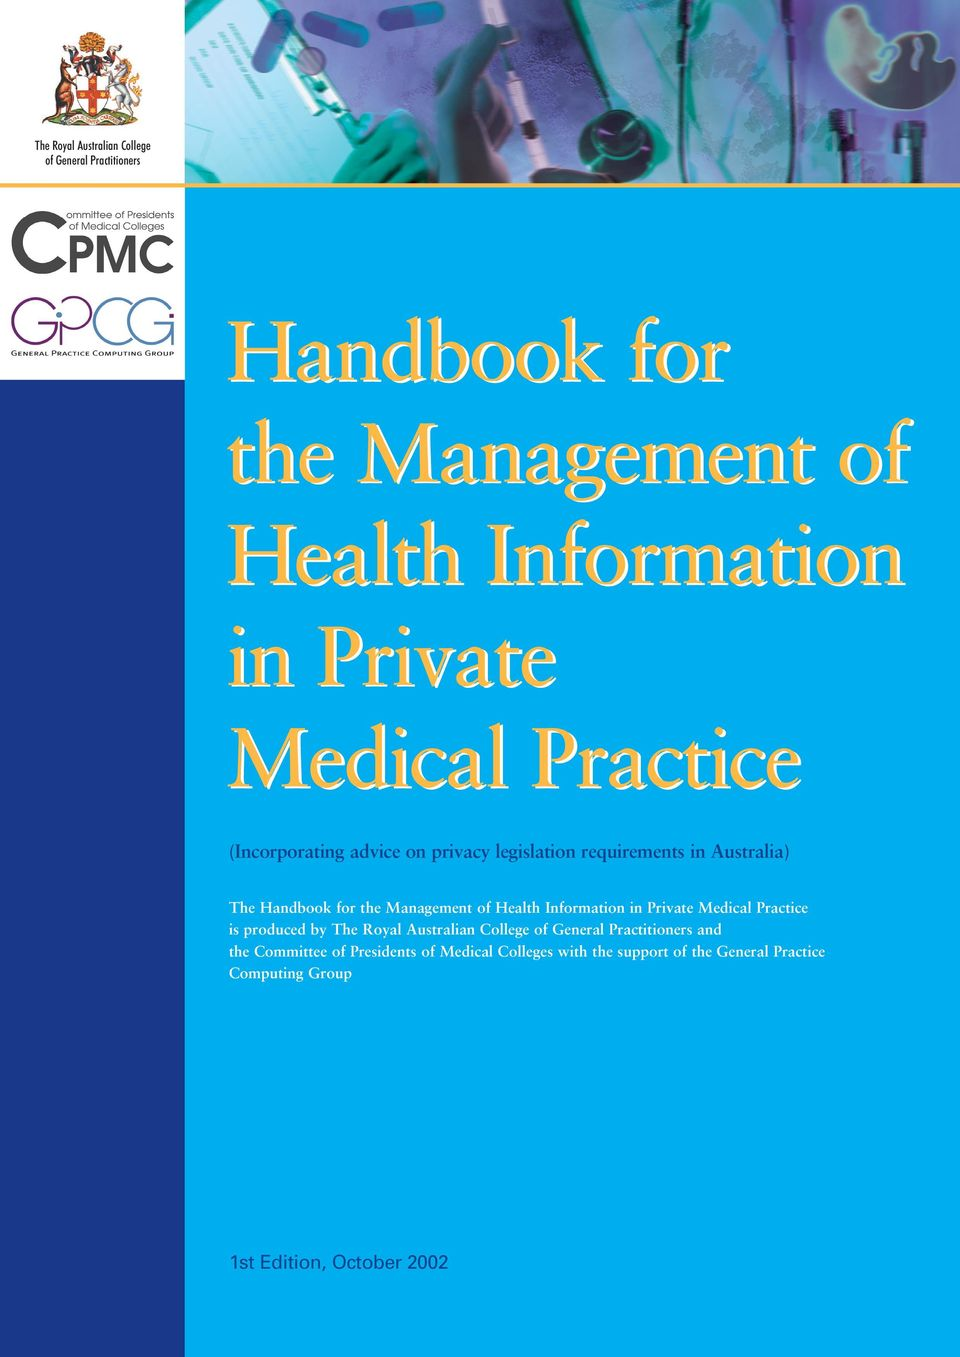 Information in Private Medical Practice is produced by The Royal Australian College of General Practitioners and the